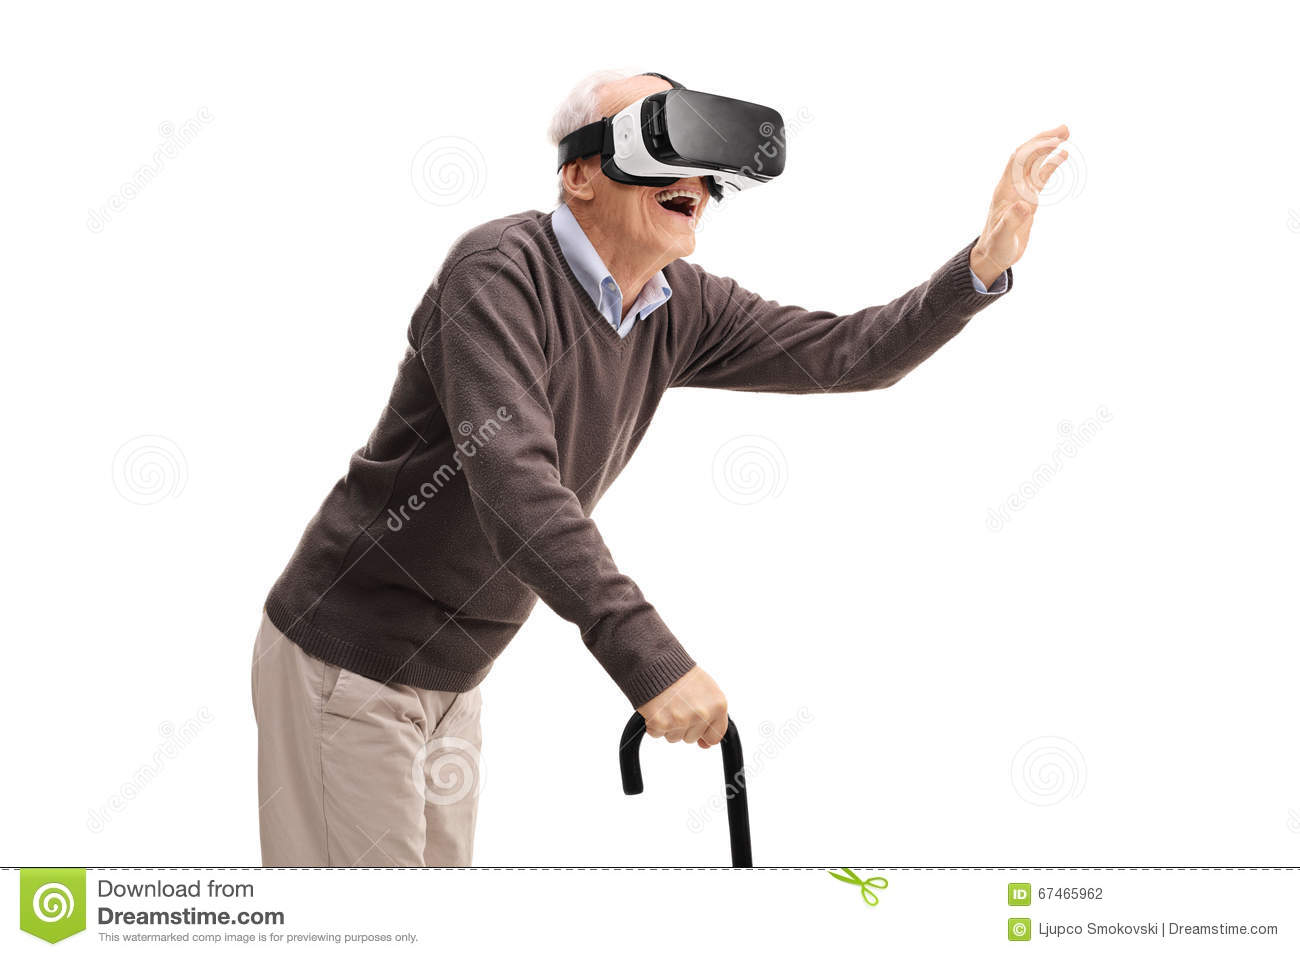 7f516db067 Senior gentleman with a cane having fun using a VR headset isolated on  white background